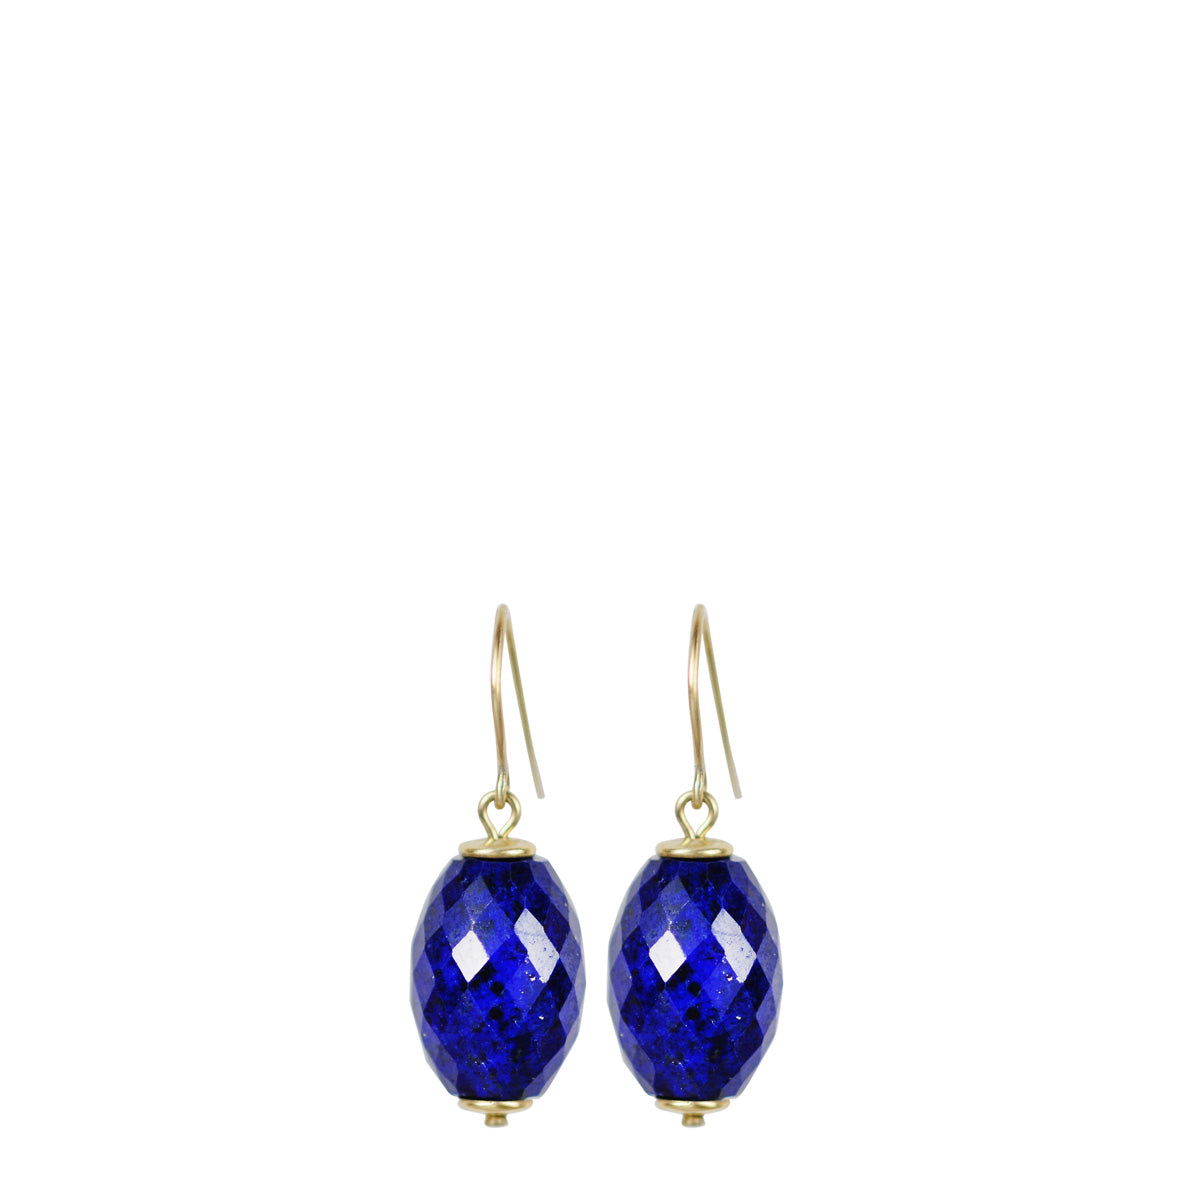 18K Gold Large Lapis Oval Bead Drop Earrings